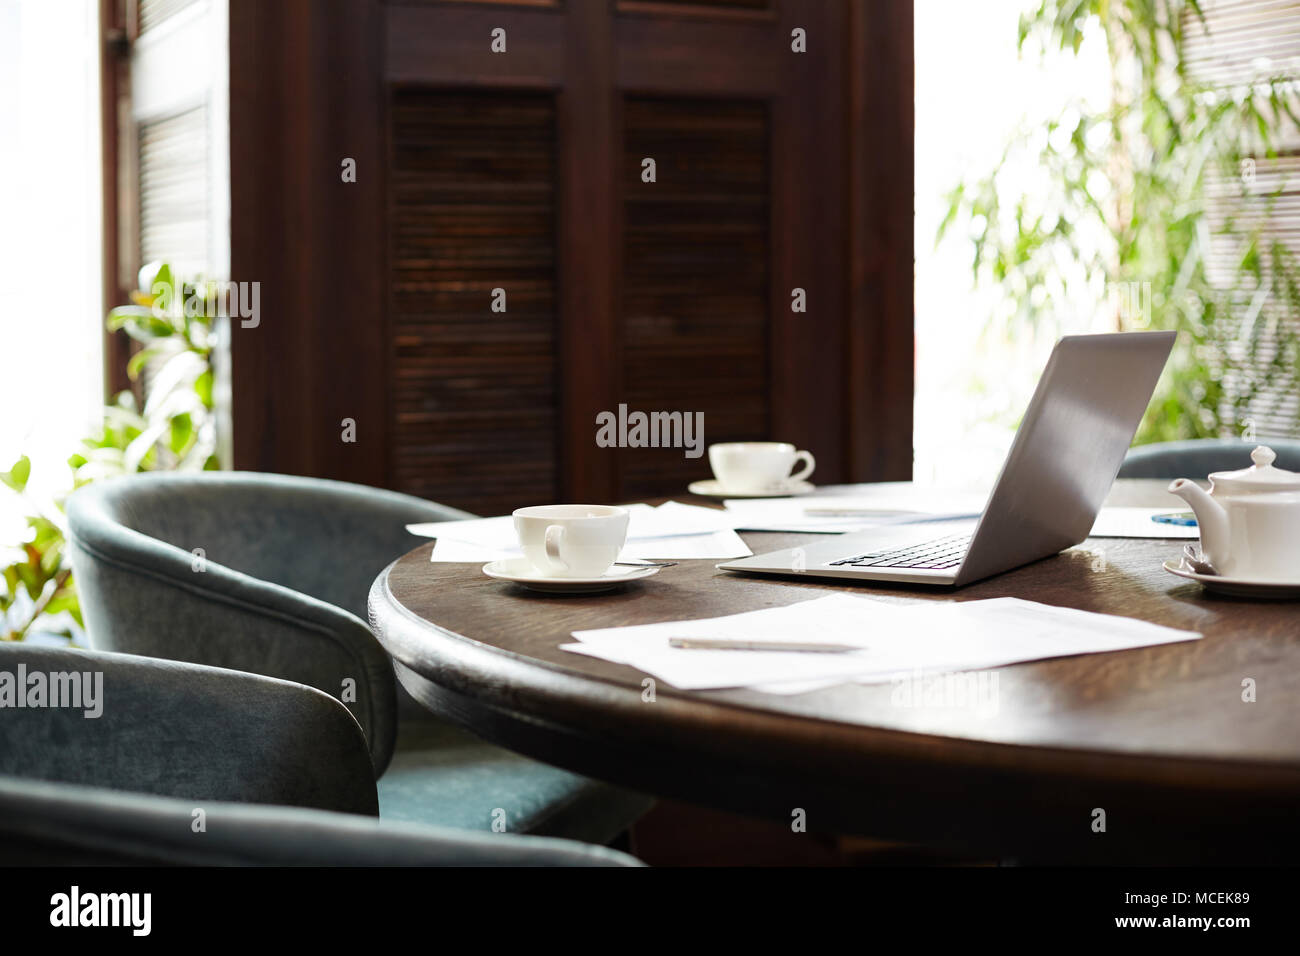 Round Wooden Conference Table Stock Photos Round Wooden Conference - Large wooden conference table